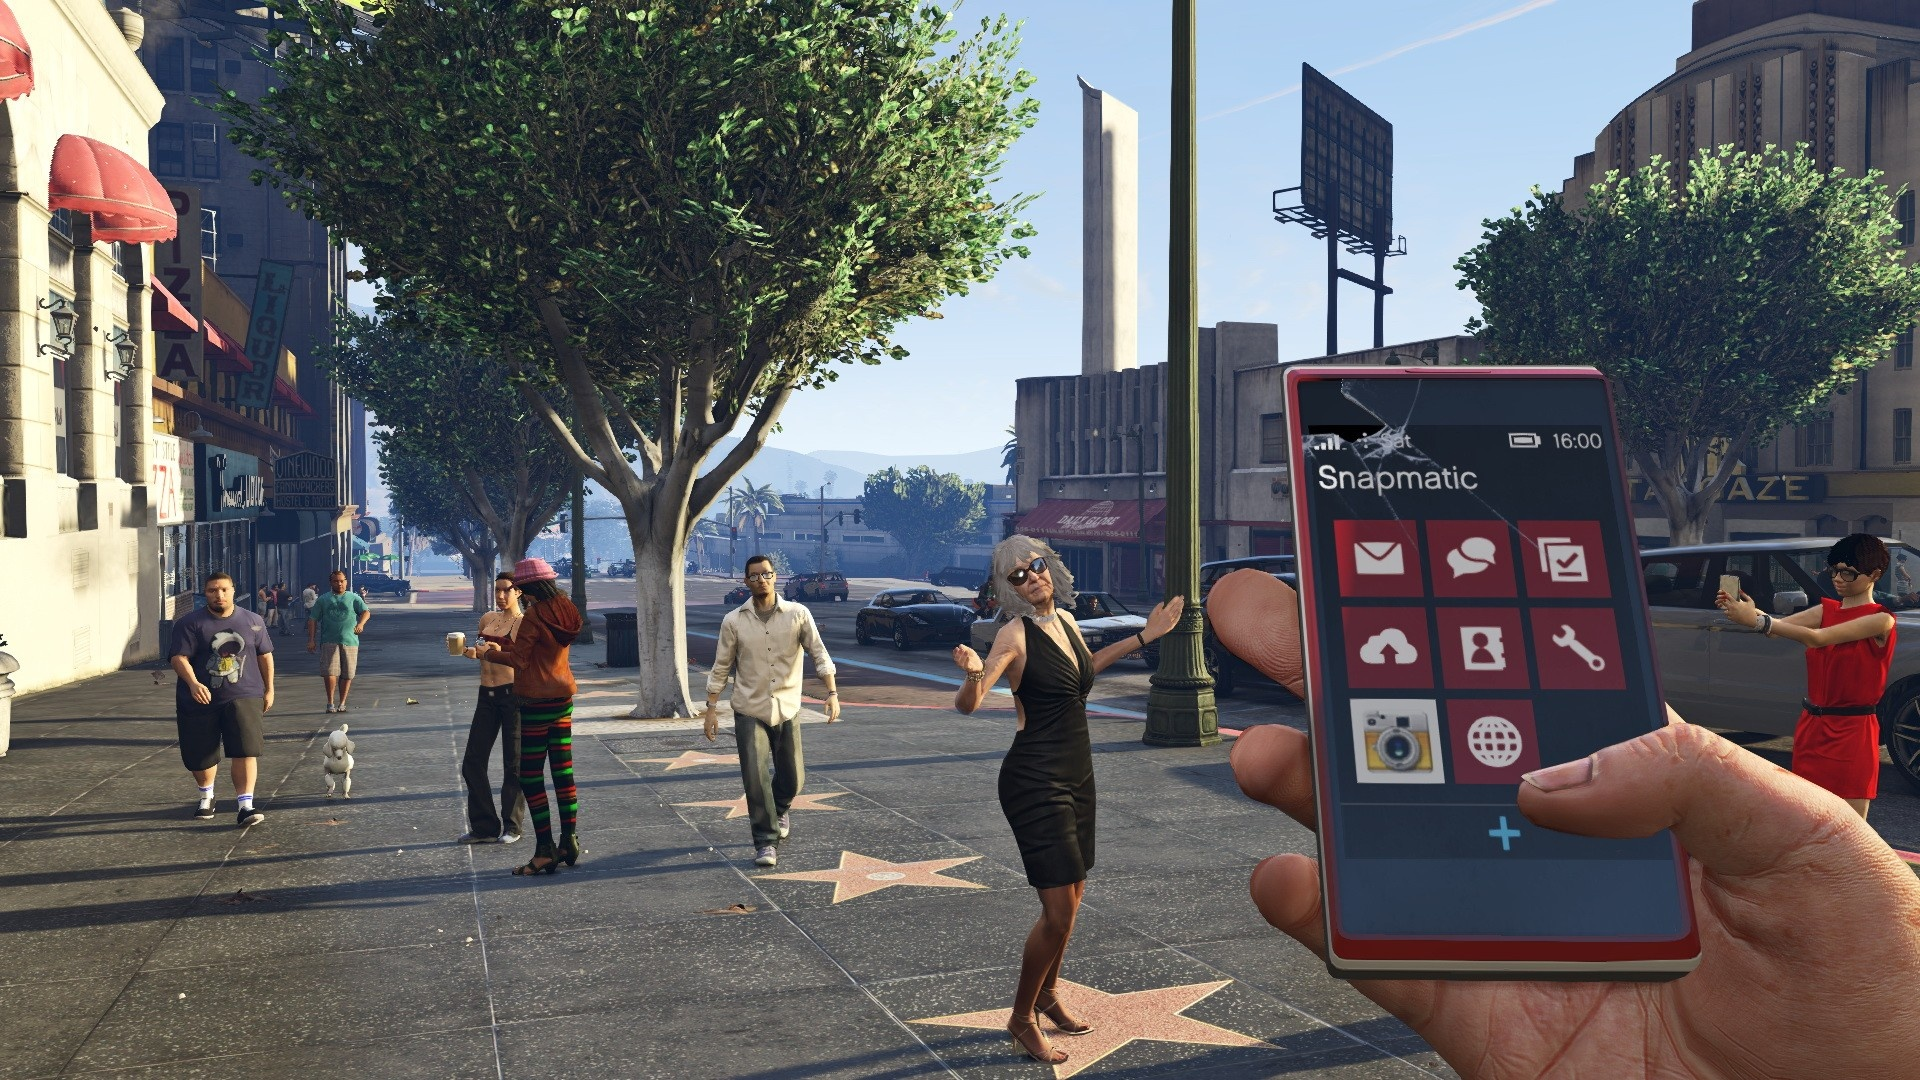 grand-theft-auto-5-first-person-mode-confirmed-for-pc-ps4-xbox-one-141513063137